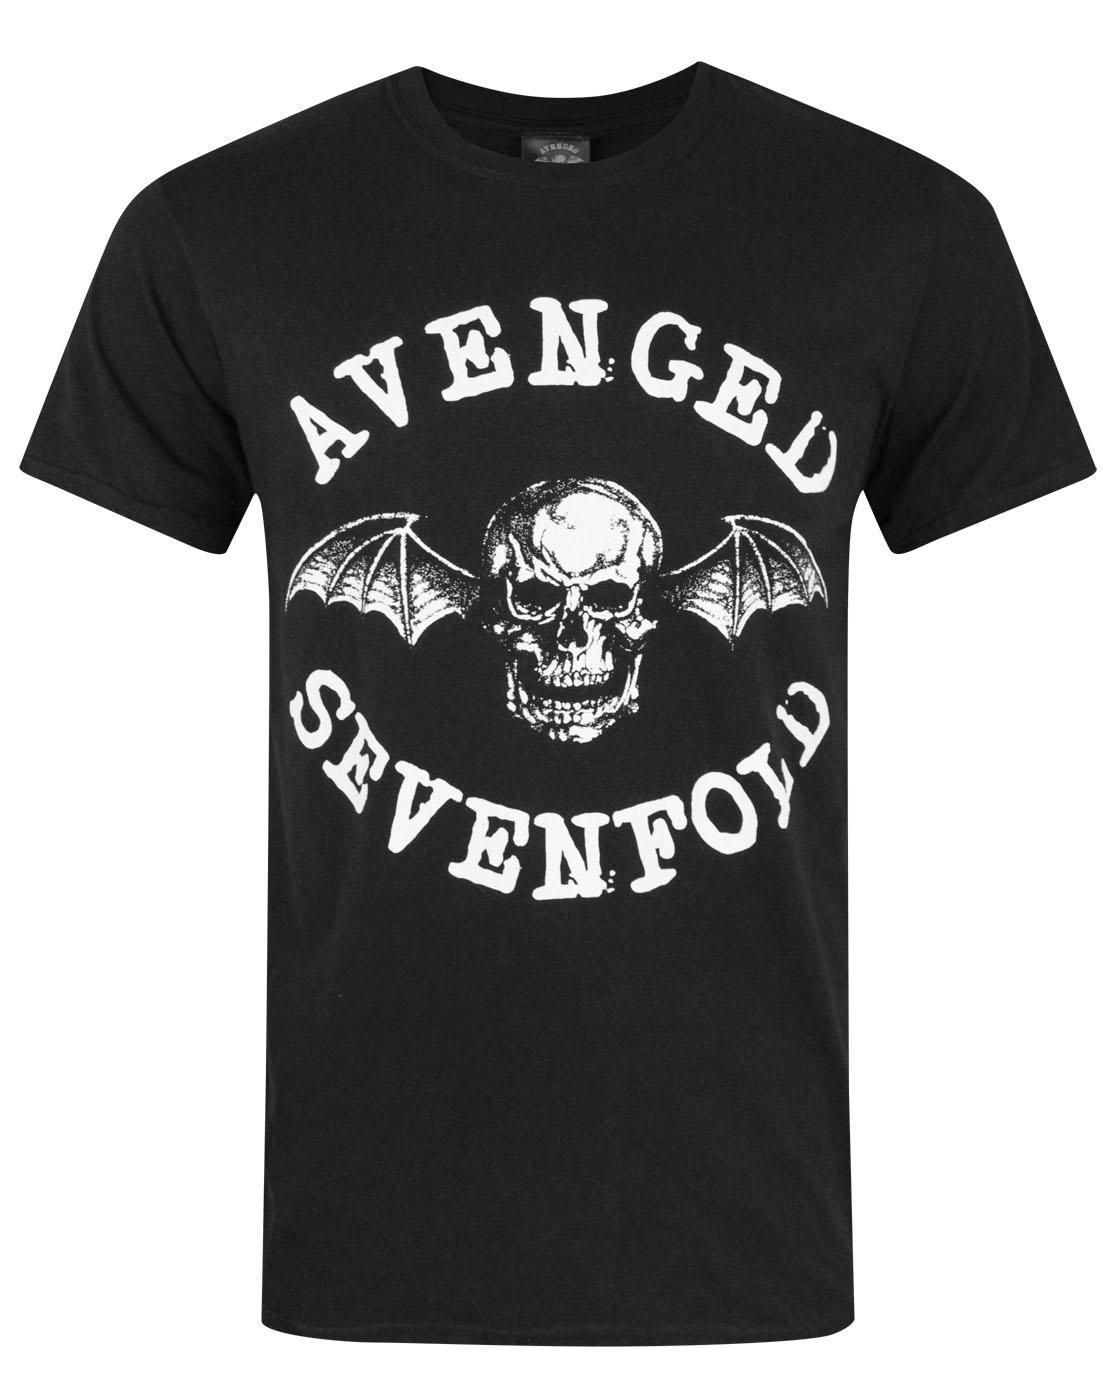 Click To Buy Avenged Sevenfold Shirt S 3xl Not Ready To Die Metal Hard Rock Music Cotton Avenged Sevenfold Music Avenged Sevenfold Avenged Sevenfold Logo